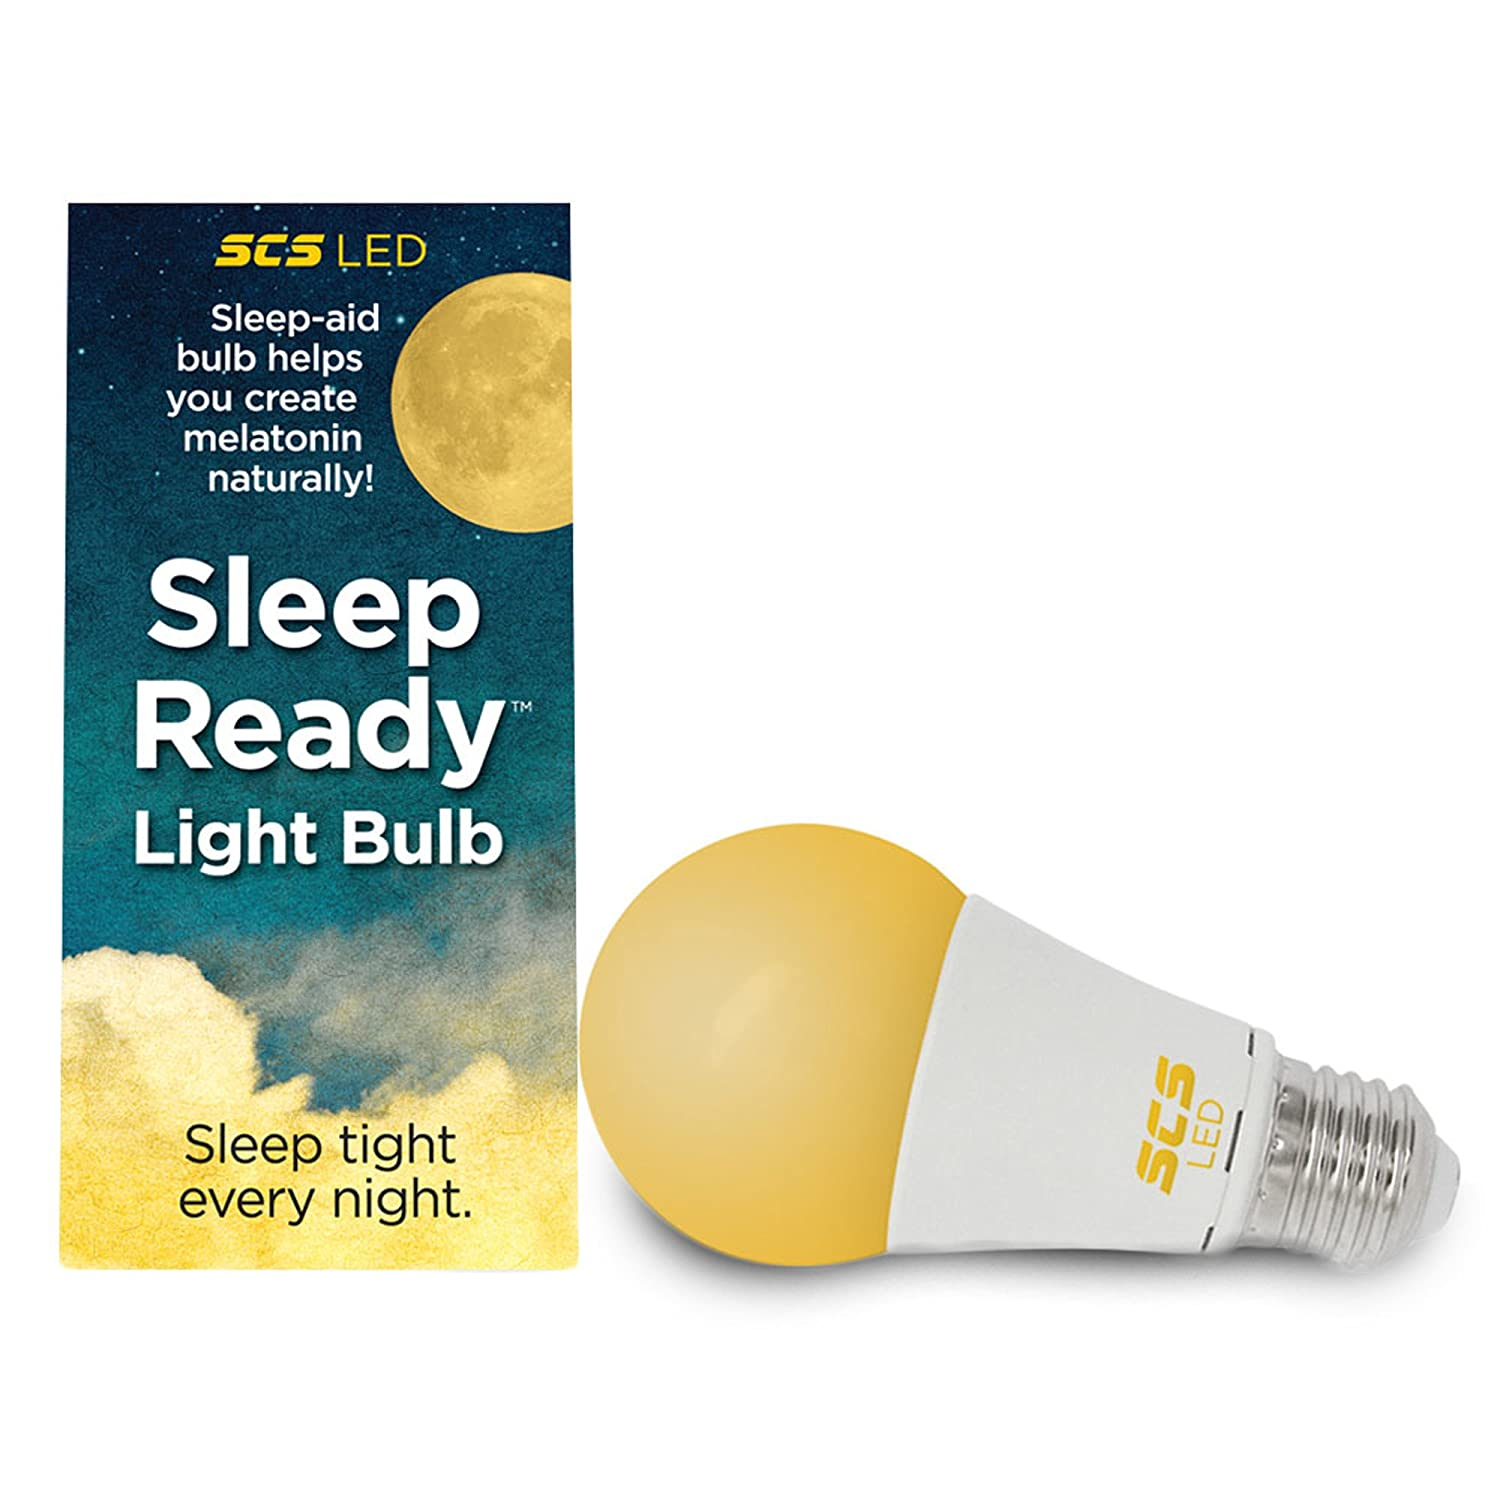 SCS Lighting Sleep-Reddy Light. Sleep Better, Naturally! 7 watt LED AMBER Bulb. Supports healthy sleep patterns, Promotes Natural Melatonin Production with Ambient Low Blue Light. SCS Lighting Solutions H&PC-65088